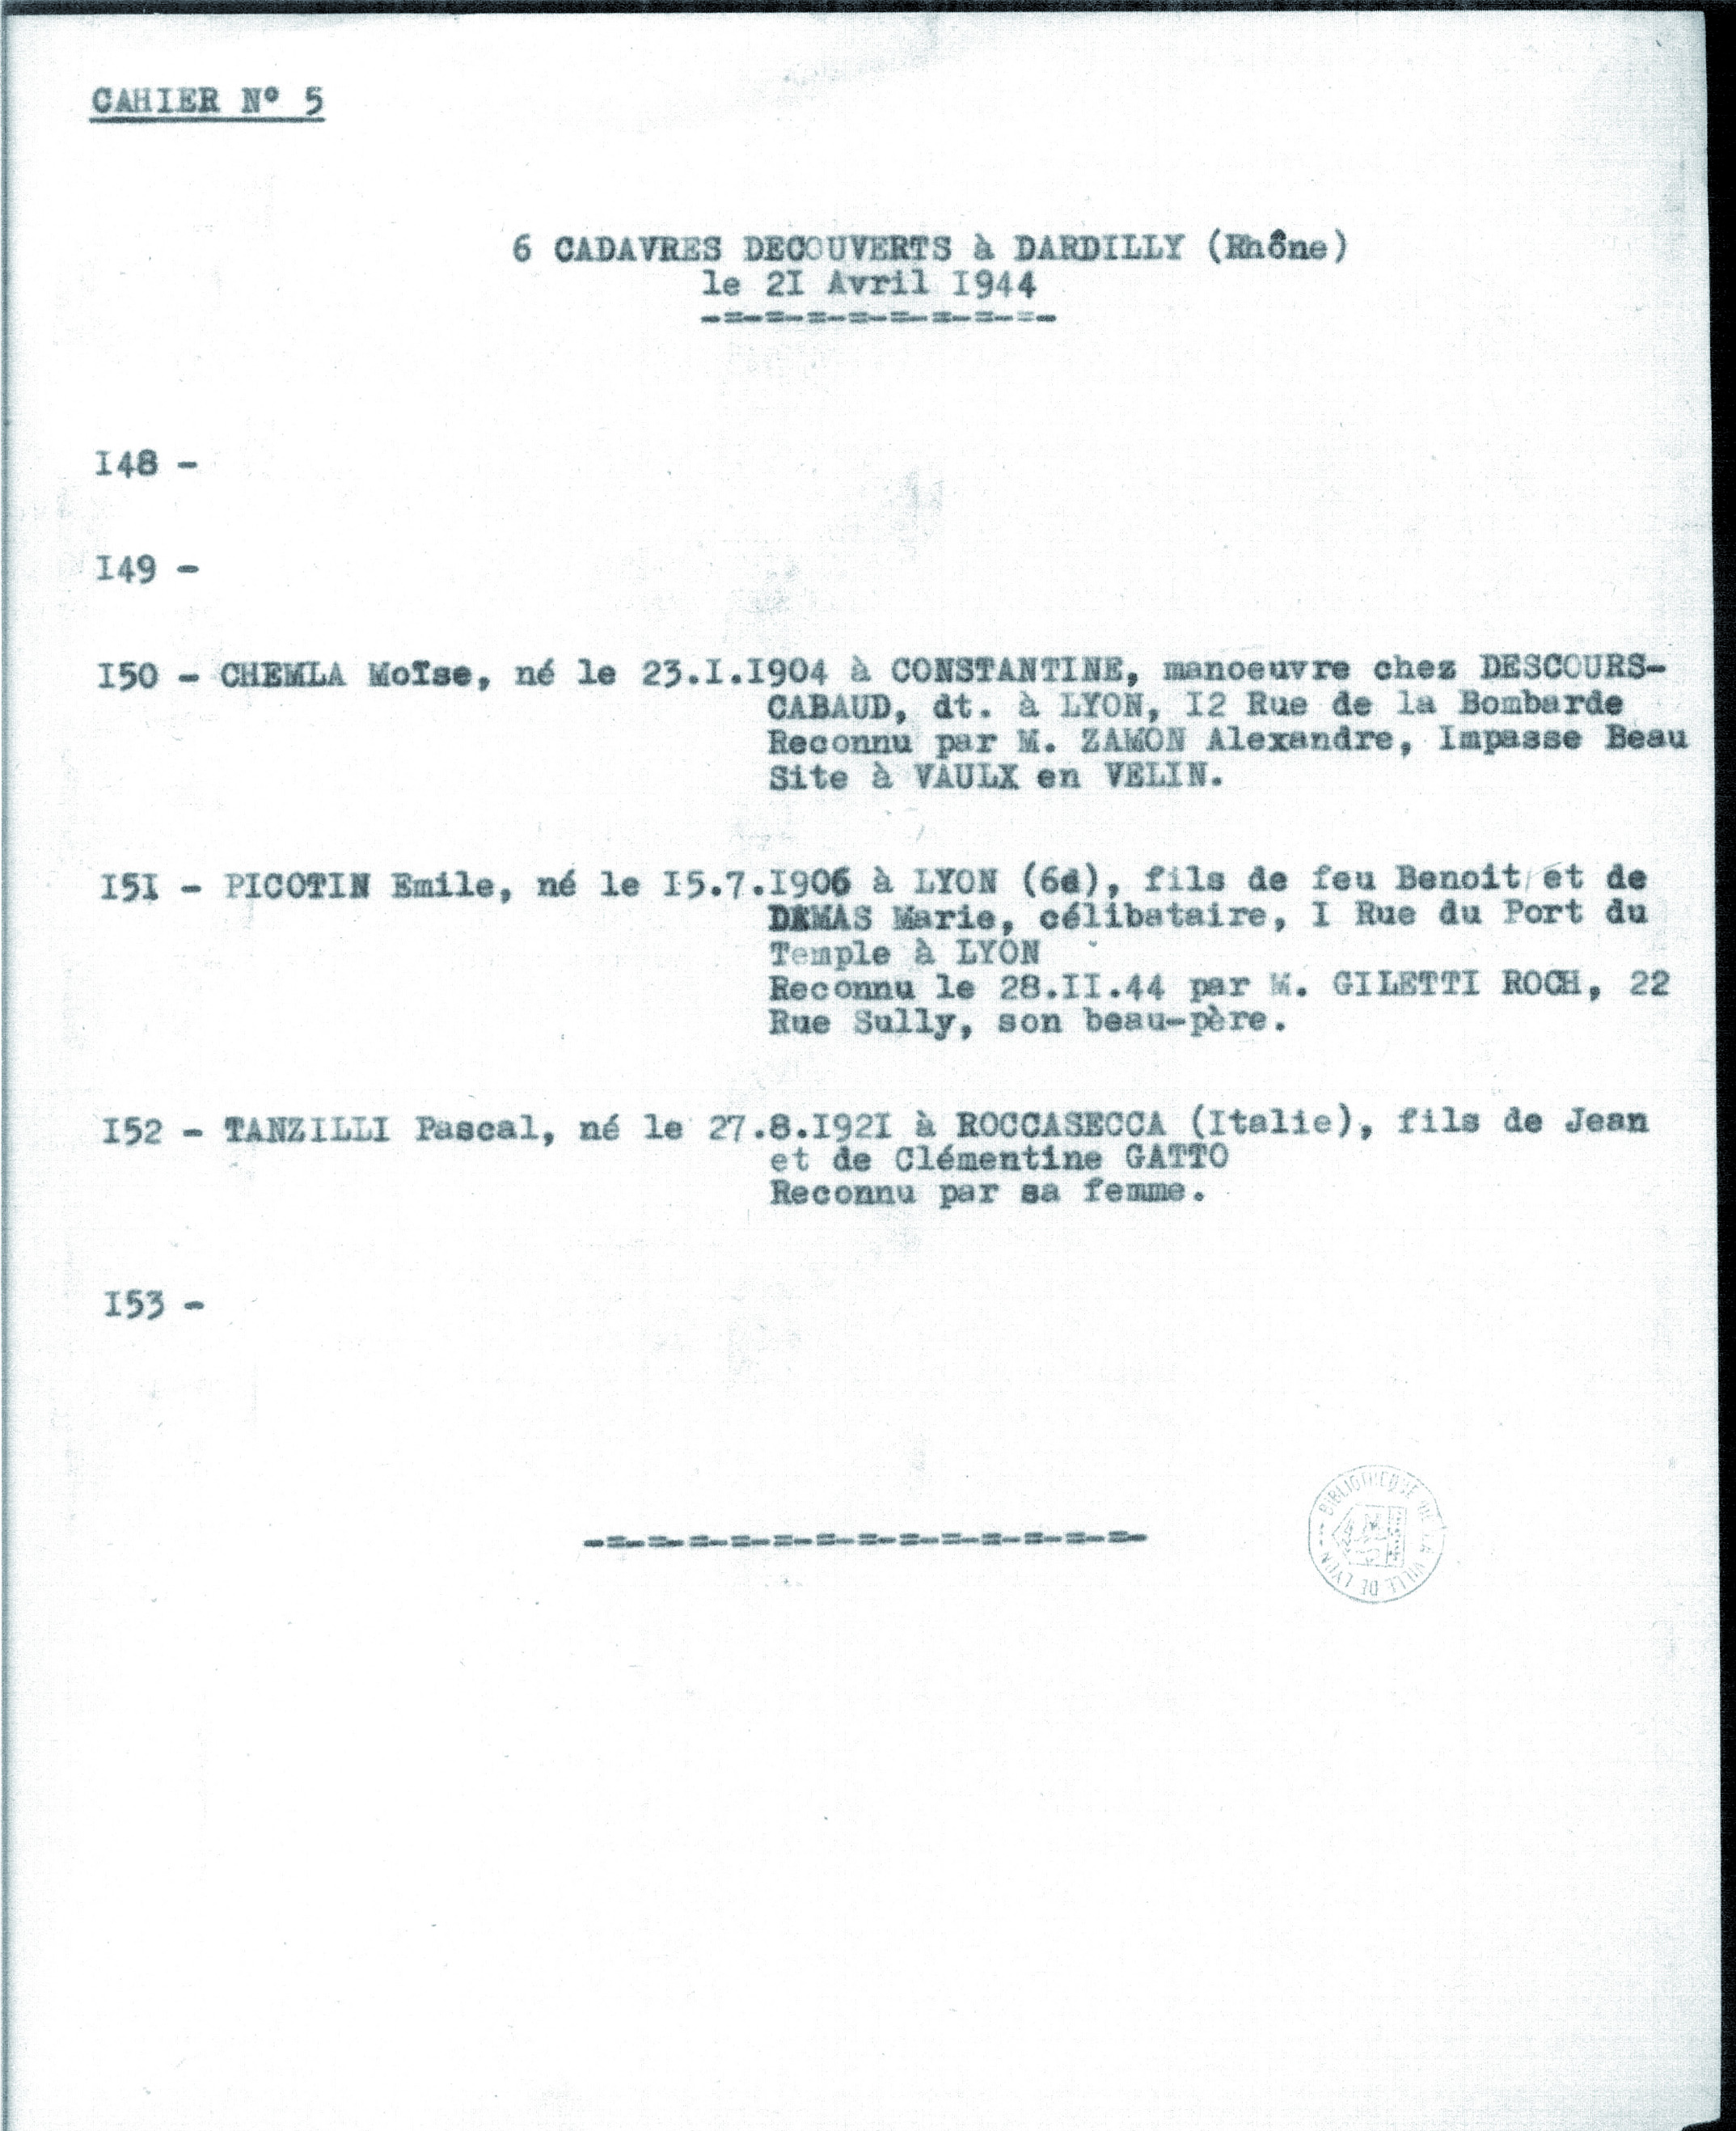 Chemla-Moise-3808W886-09 (Document officiel)